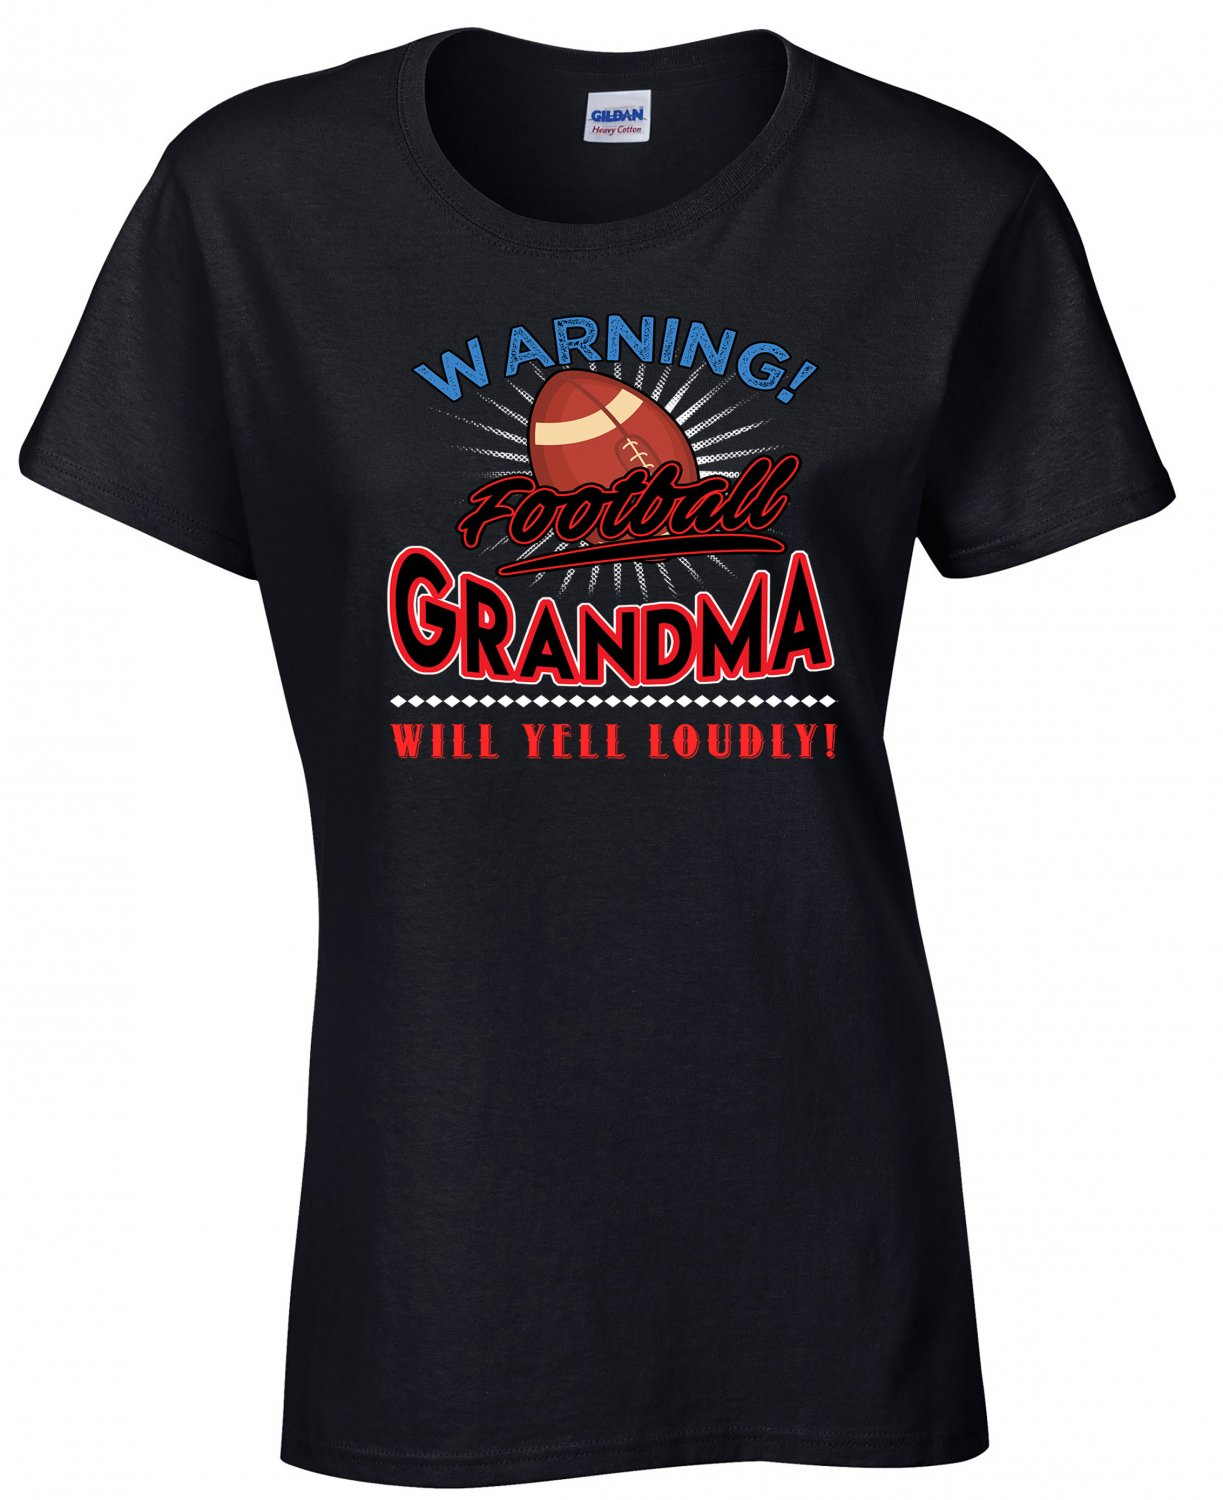 Football Grandma, Warning Football Grandma Will Yell Loudly Shirt